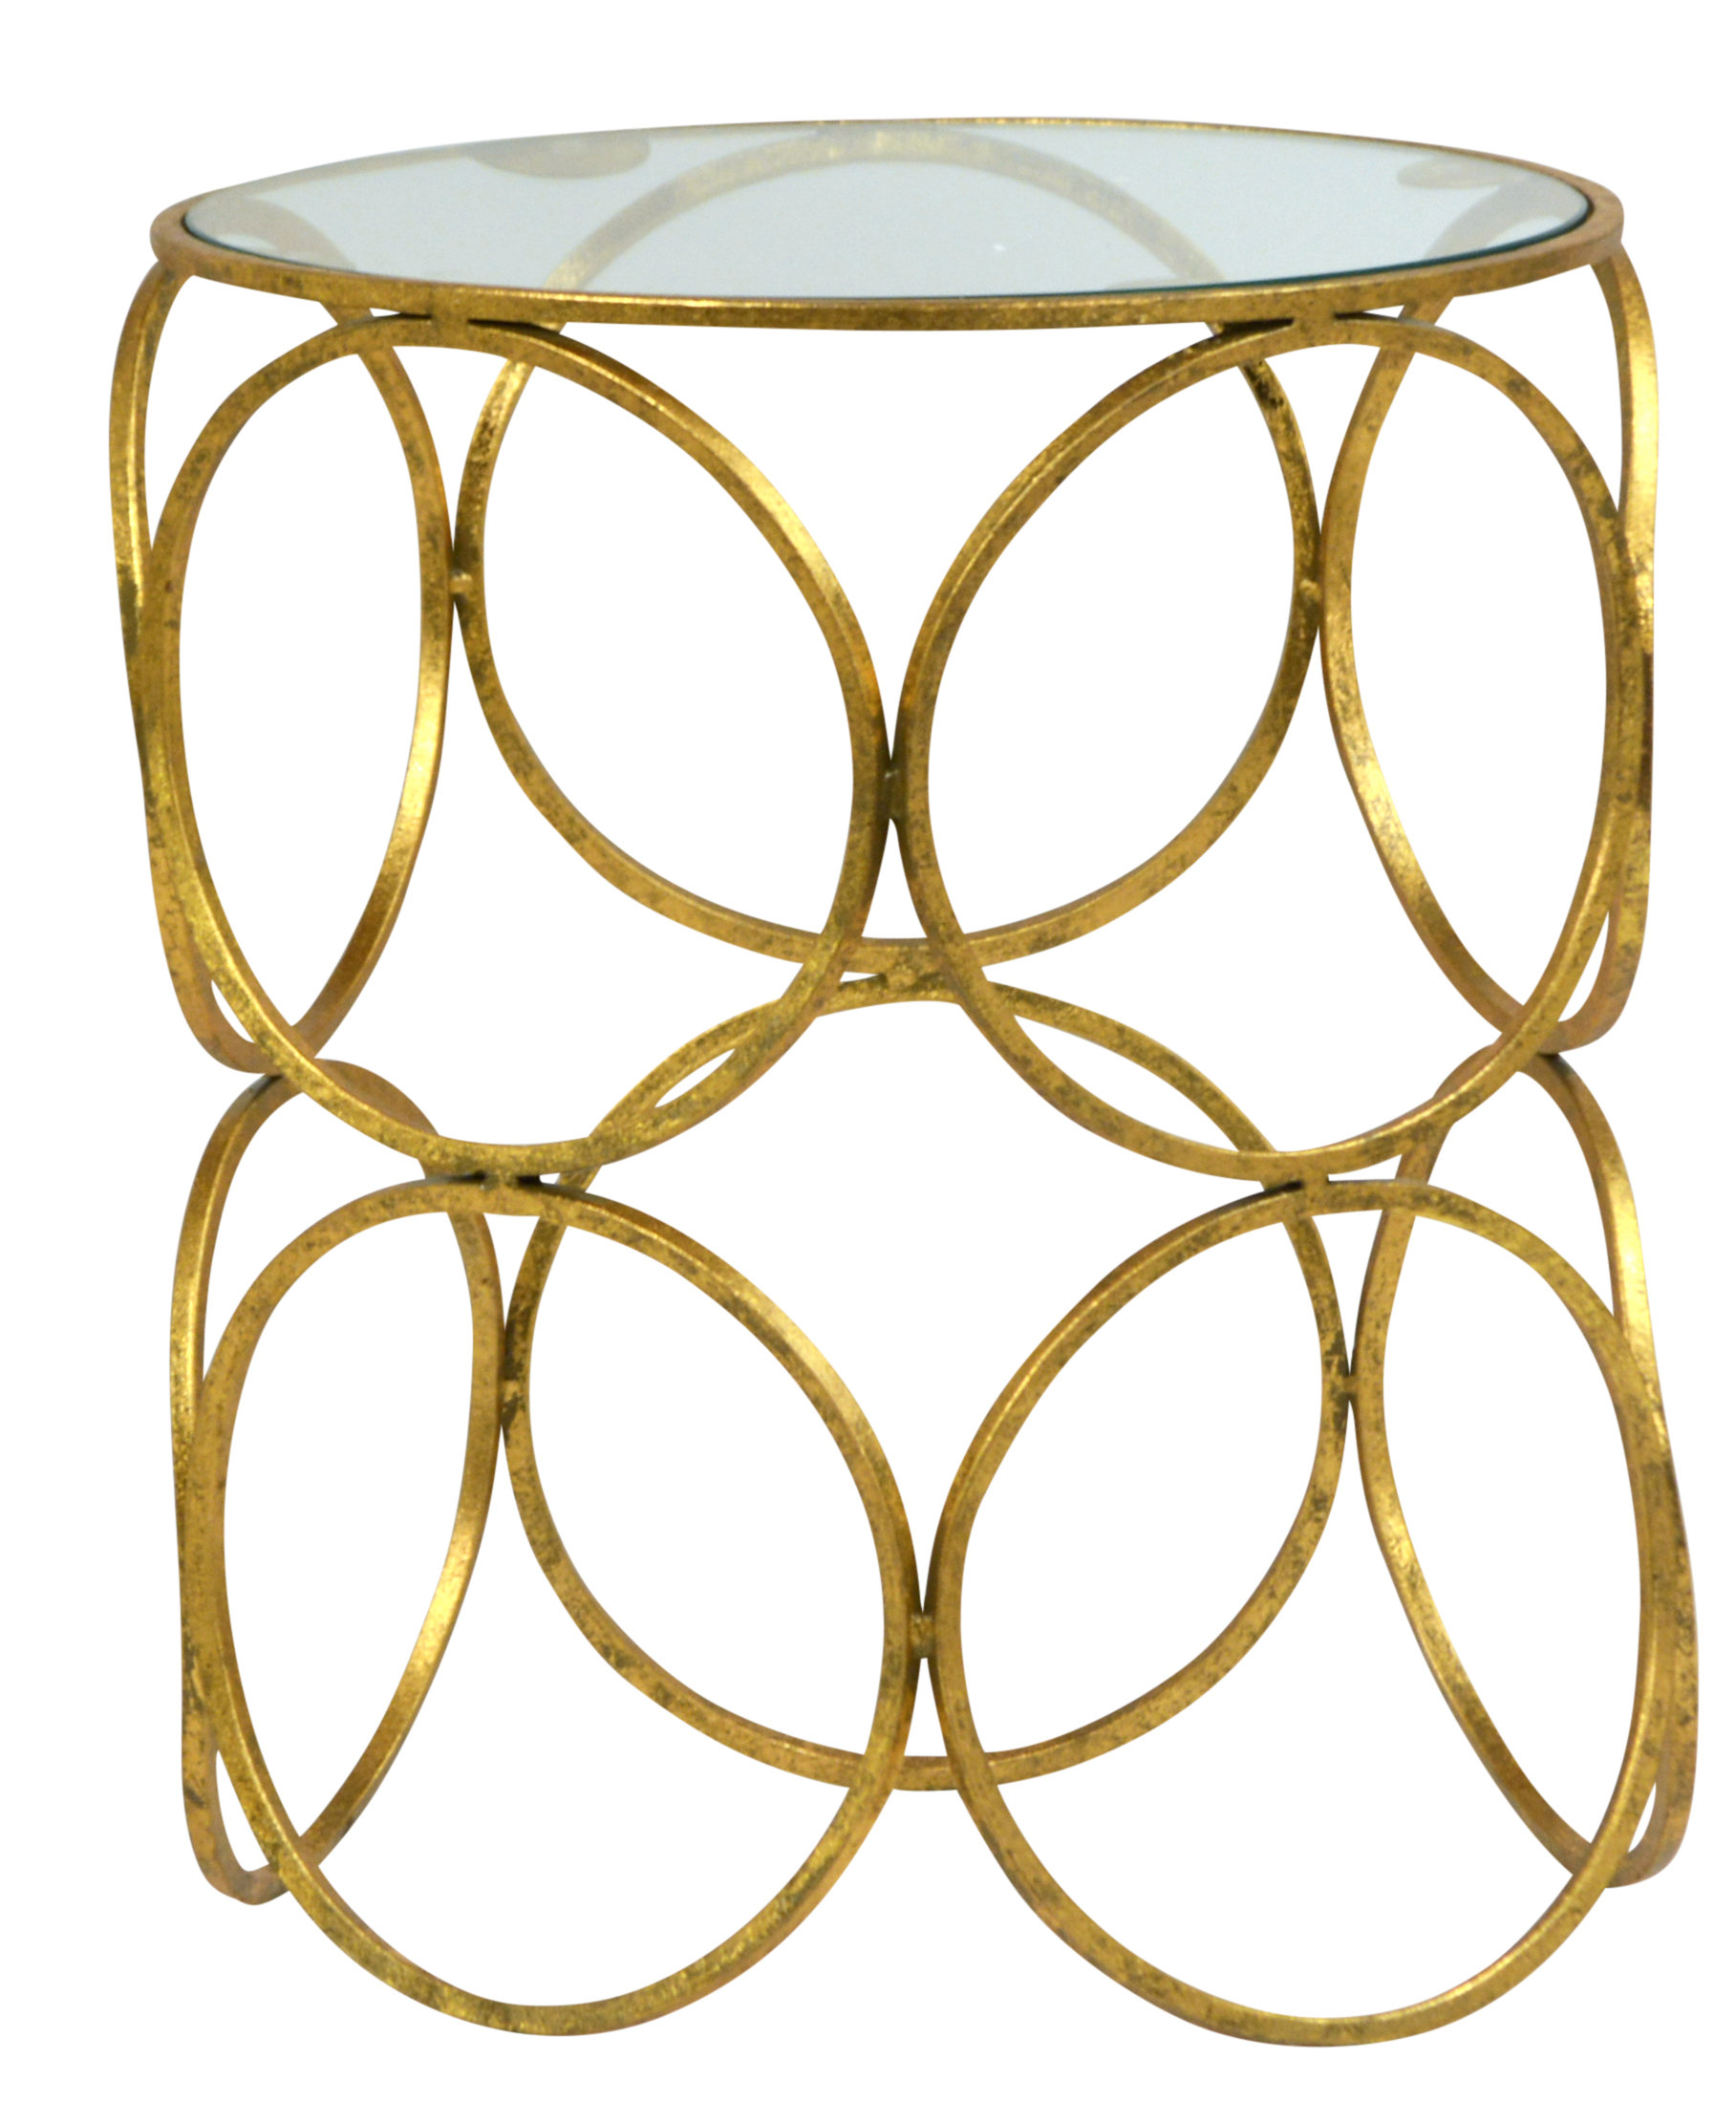 tipton tate kharta end table round accent unique rustic coffee tables small apt furniture balcony outdoor bbq runner pedestal teal metal side gold lamp drop leaf uma triangle sofa